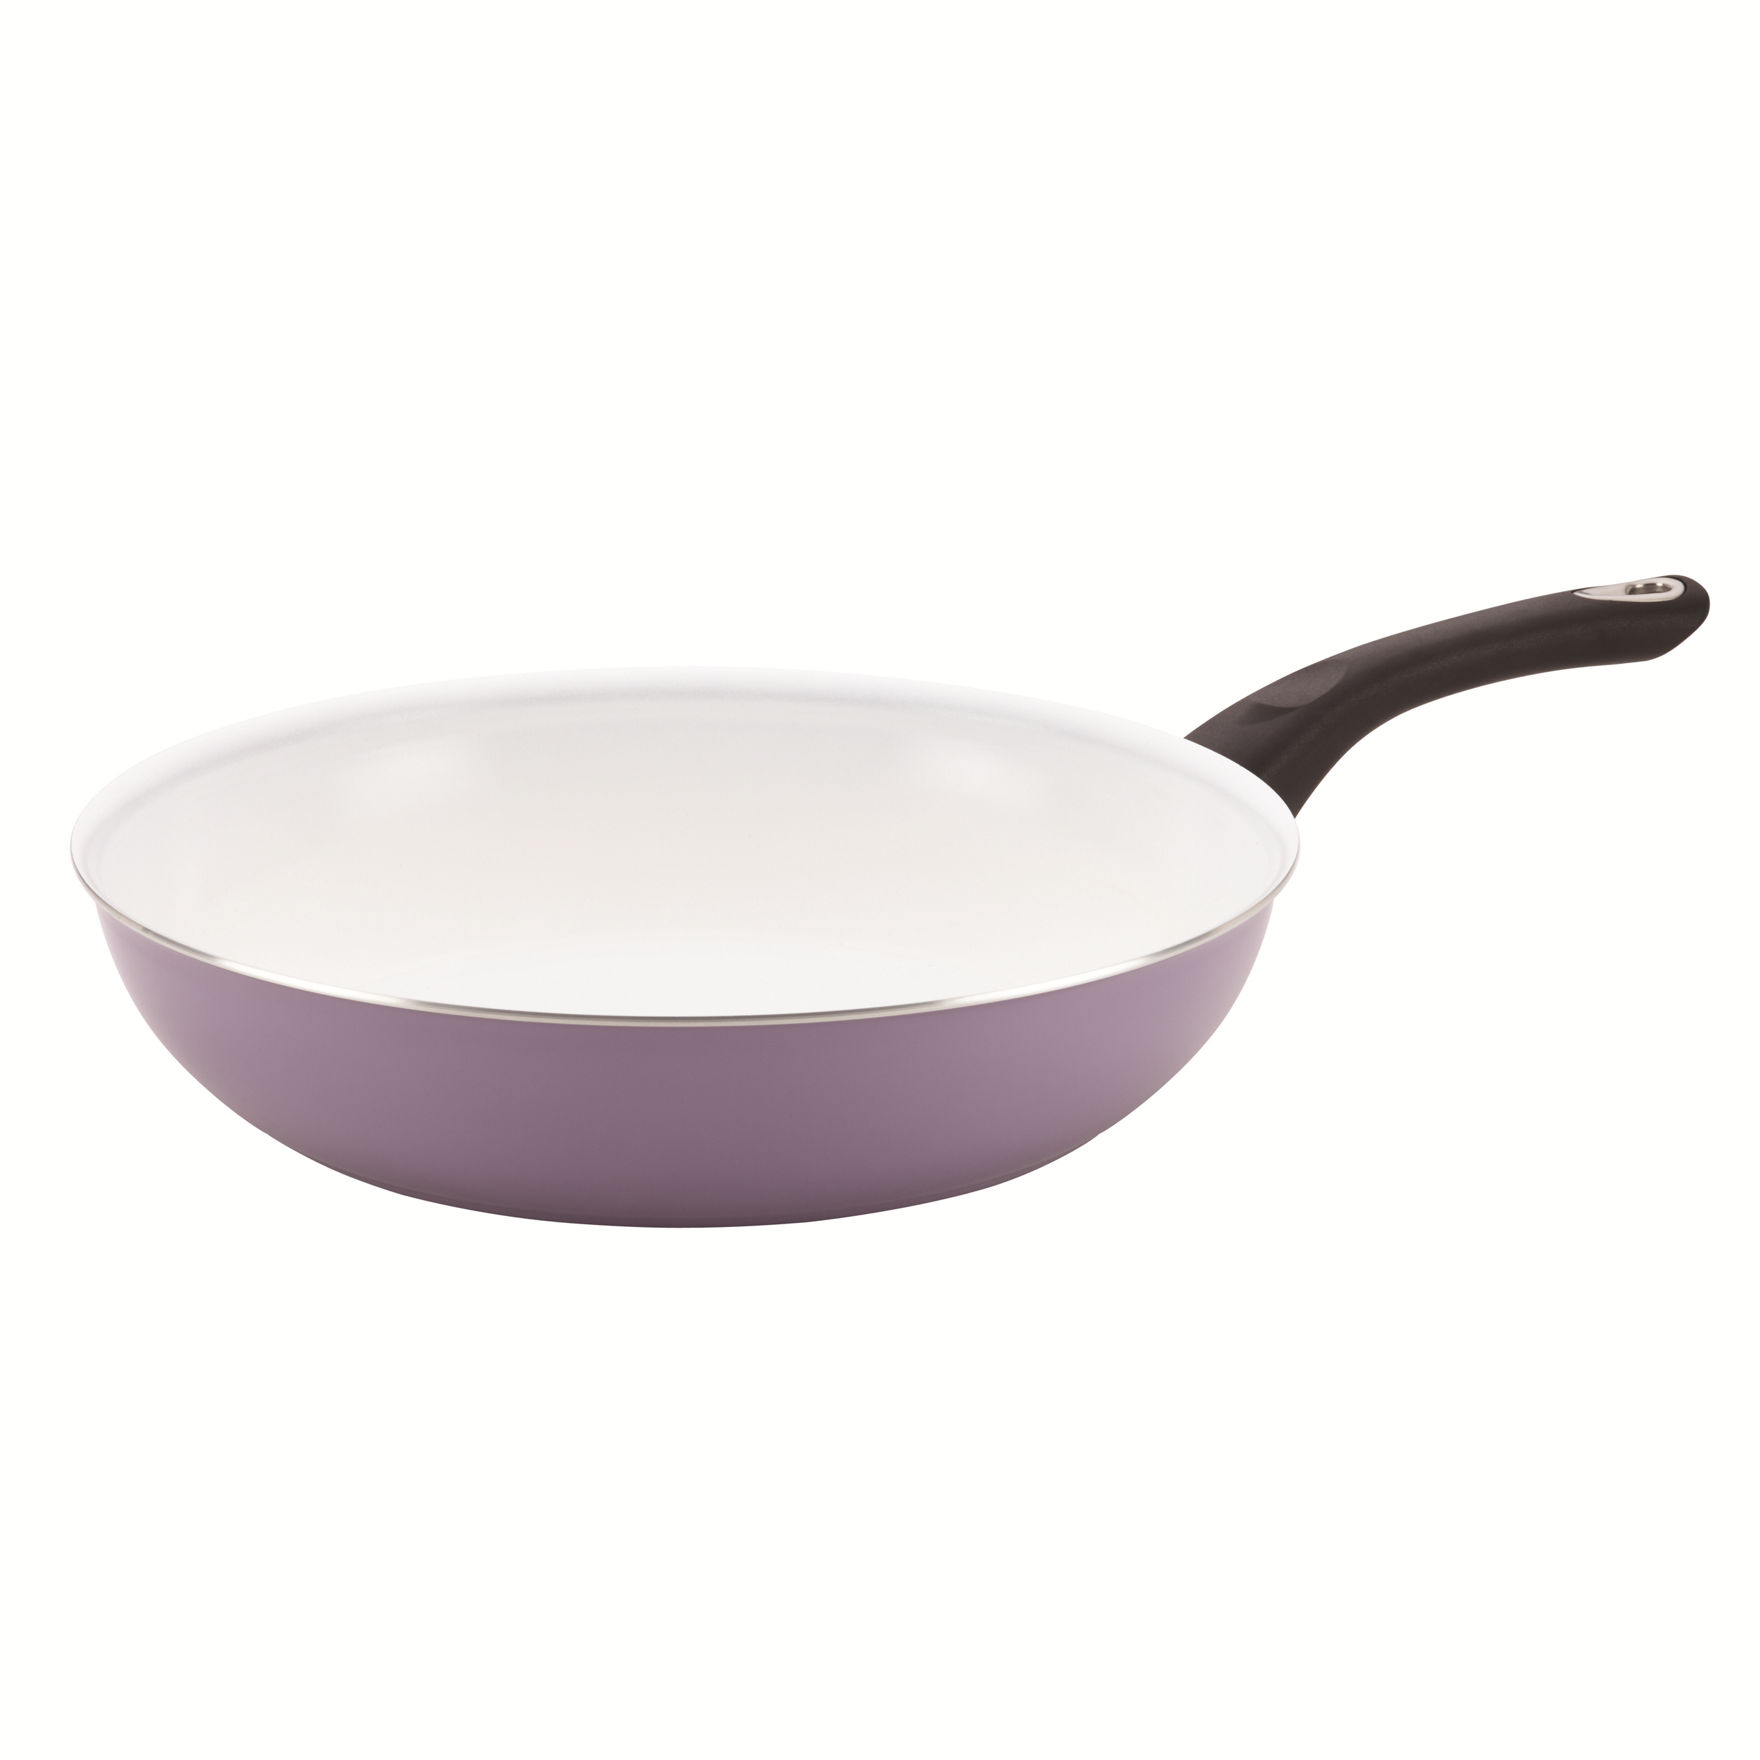 Farberware Lavender Frying Pans & Skillets Cookware